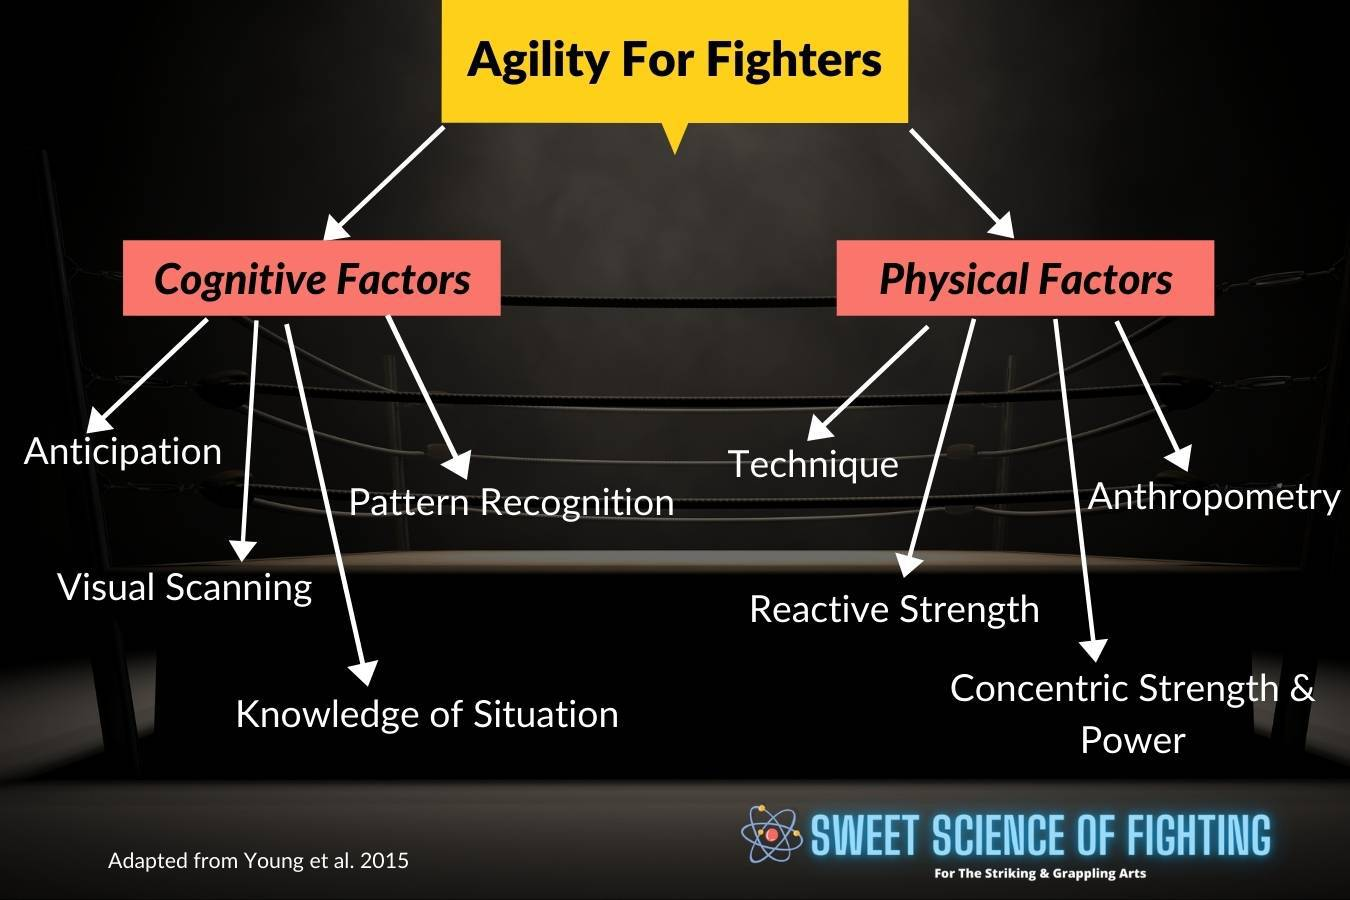 Agility For Fighters